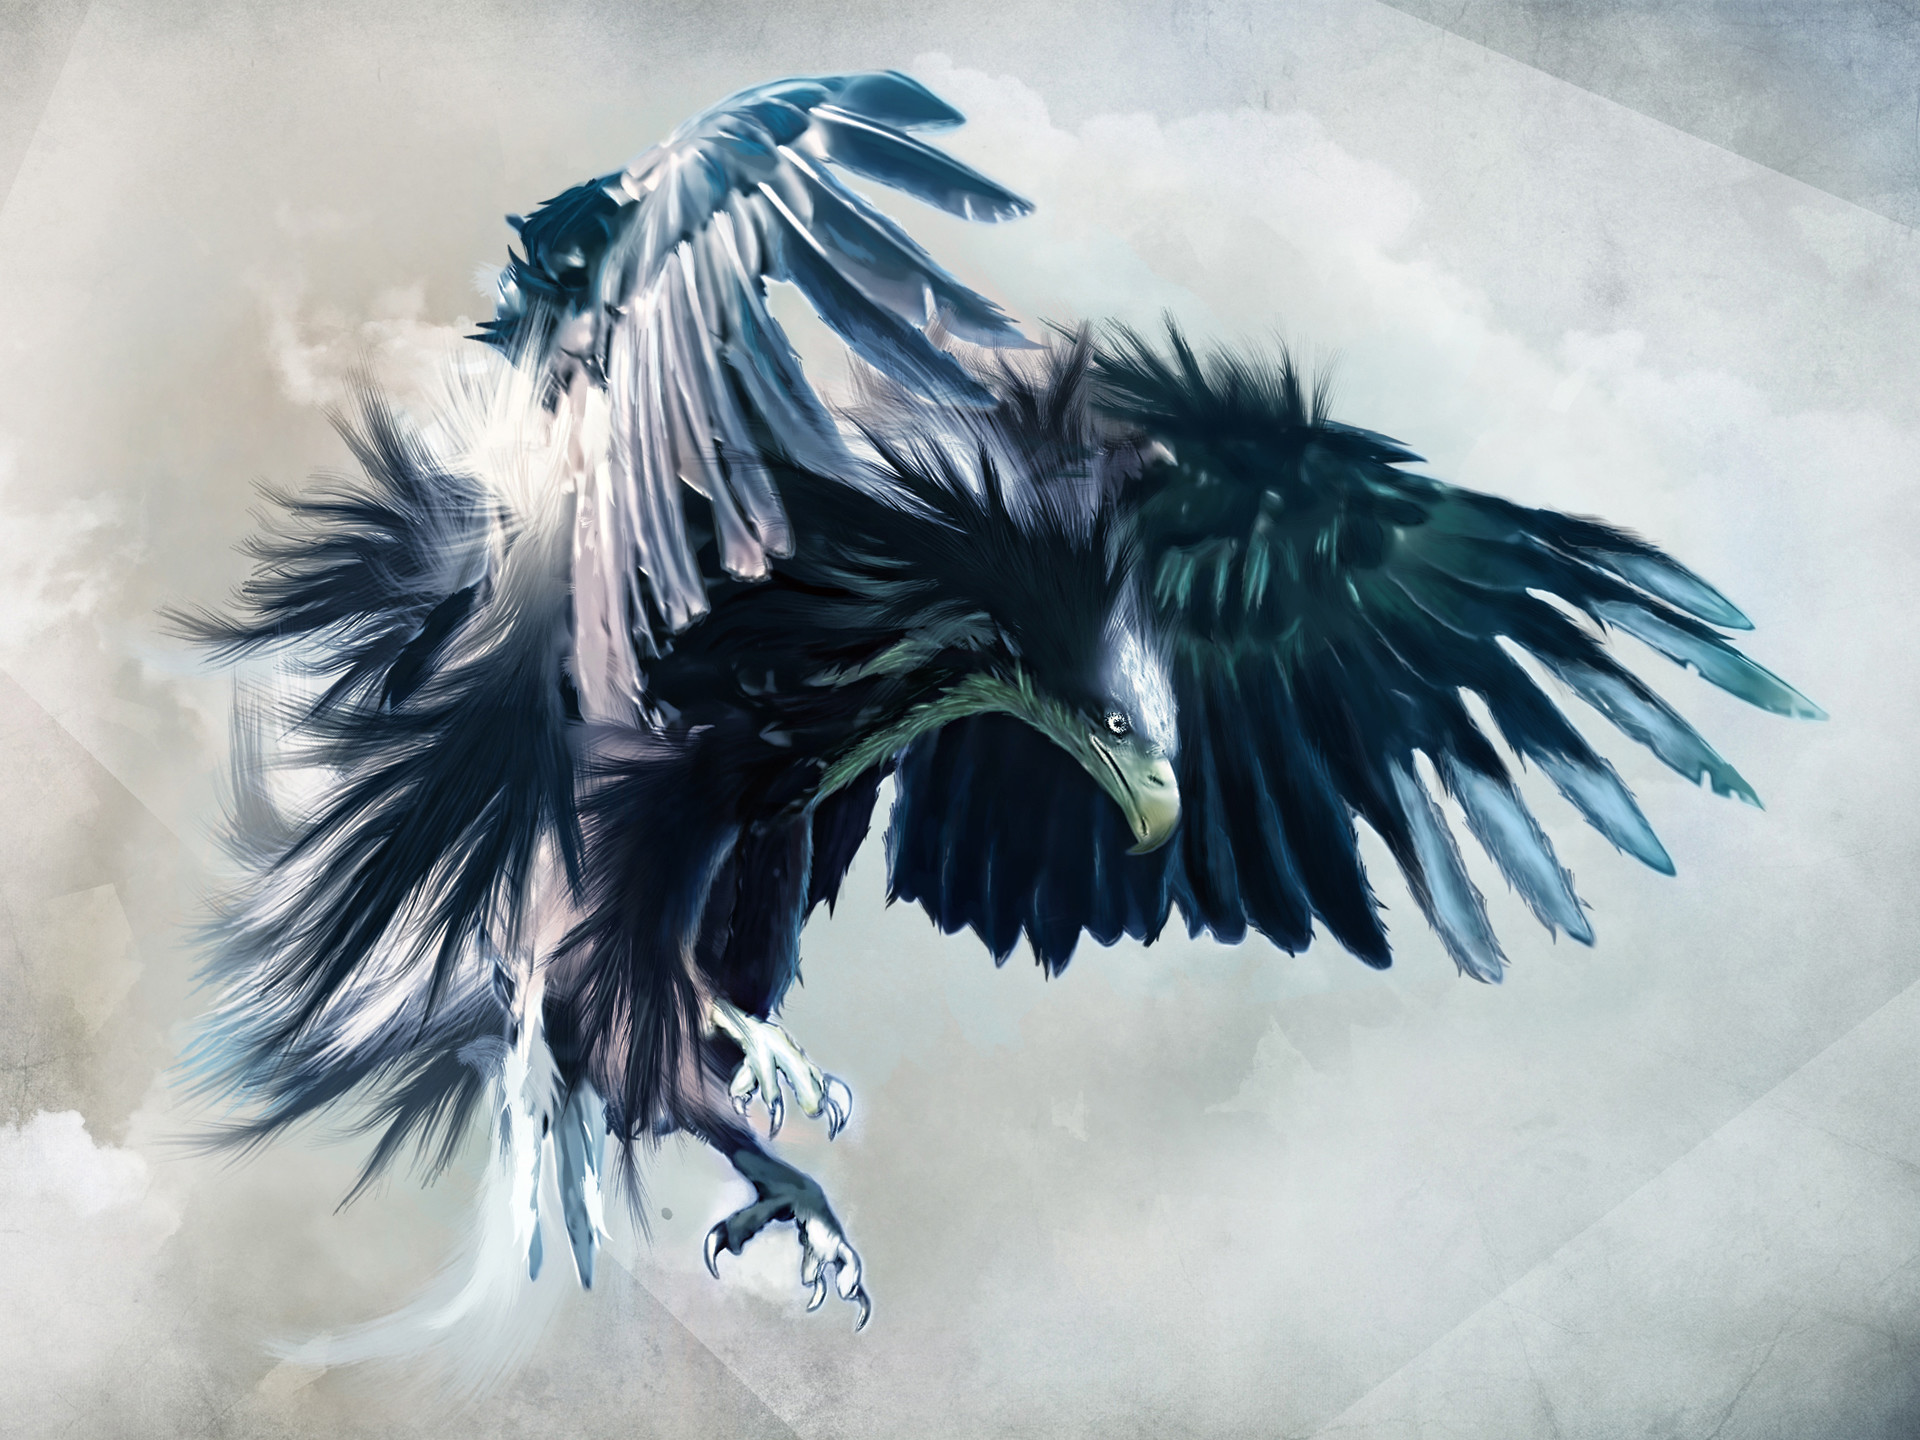 1920x1440 Fierce Eagle HD Wallpaper on MobDecor